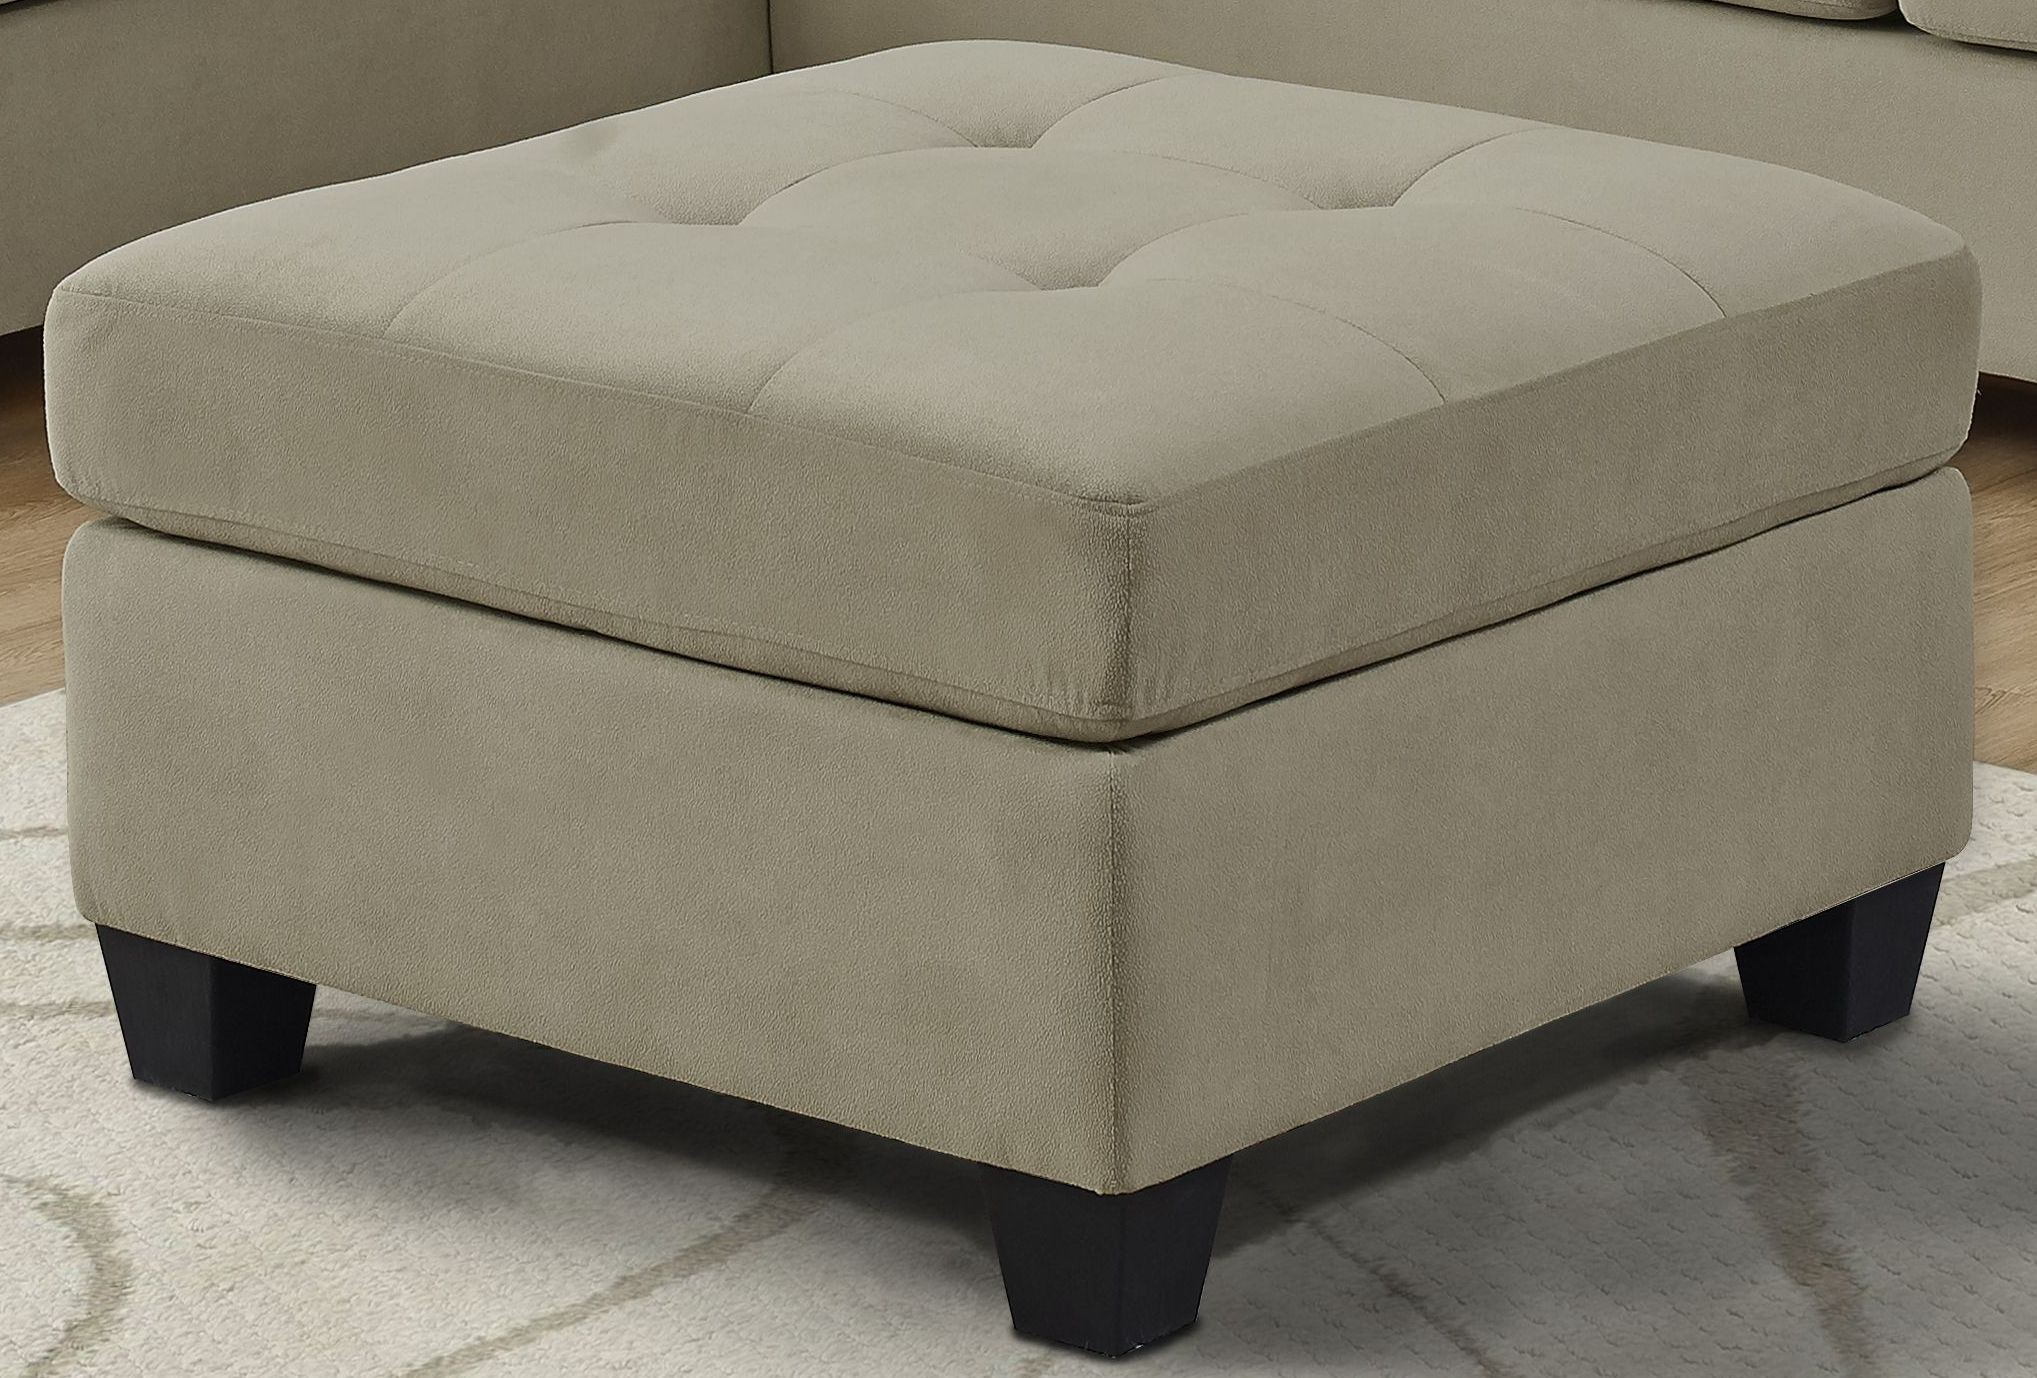 ultra soft taupe velvet ottoman from monarch coleman furniture. Black Bedroom Furniture Sets. Home Design Ideas